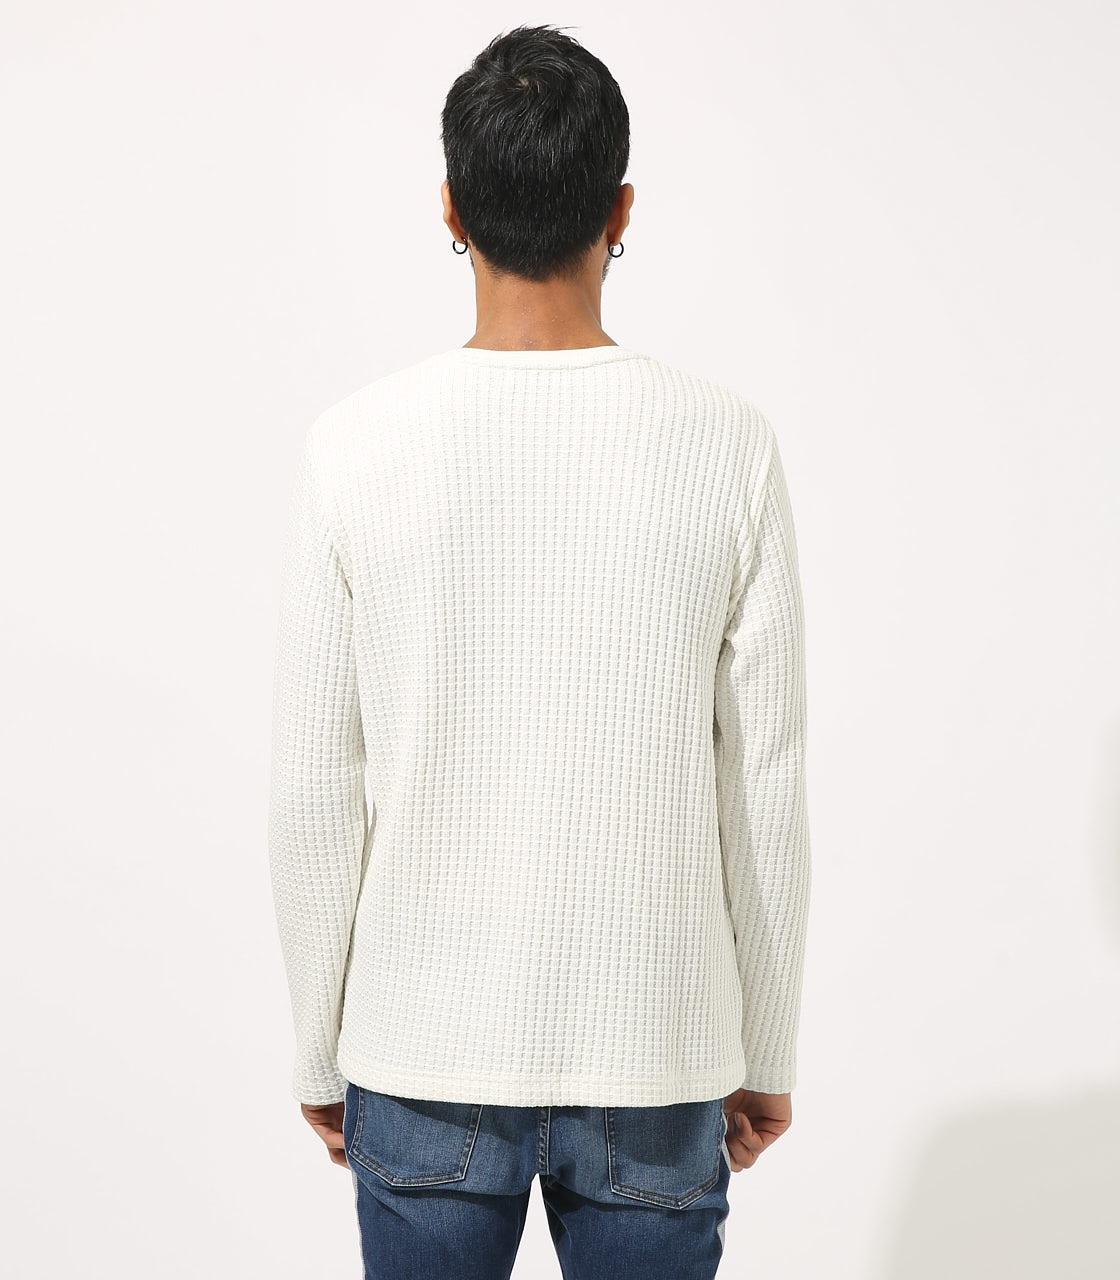 【AZUL BY MOUSSY】BIG WAFFLE LONG SLEEVE 詳細画像 WHT 7